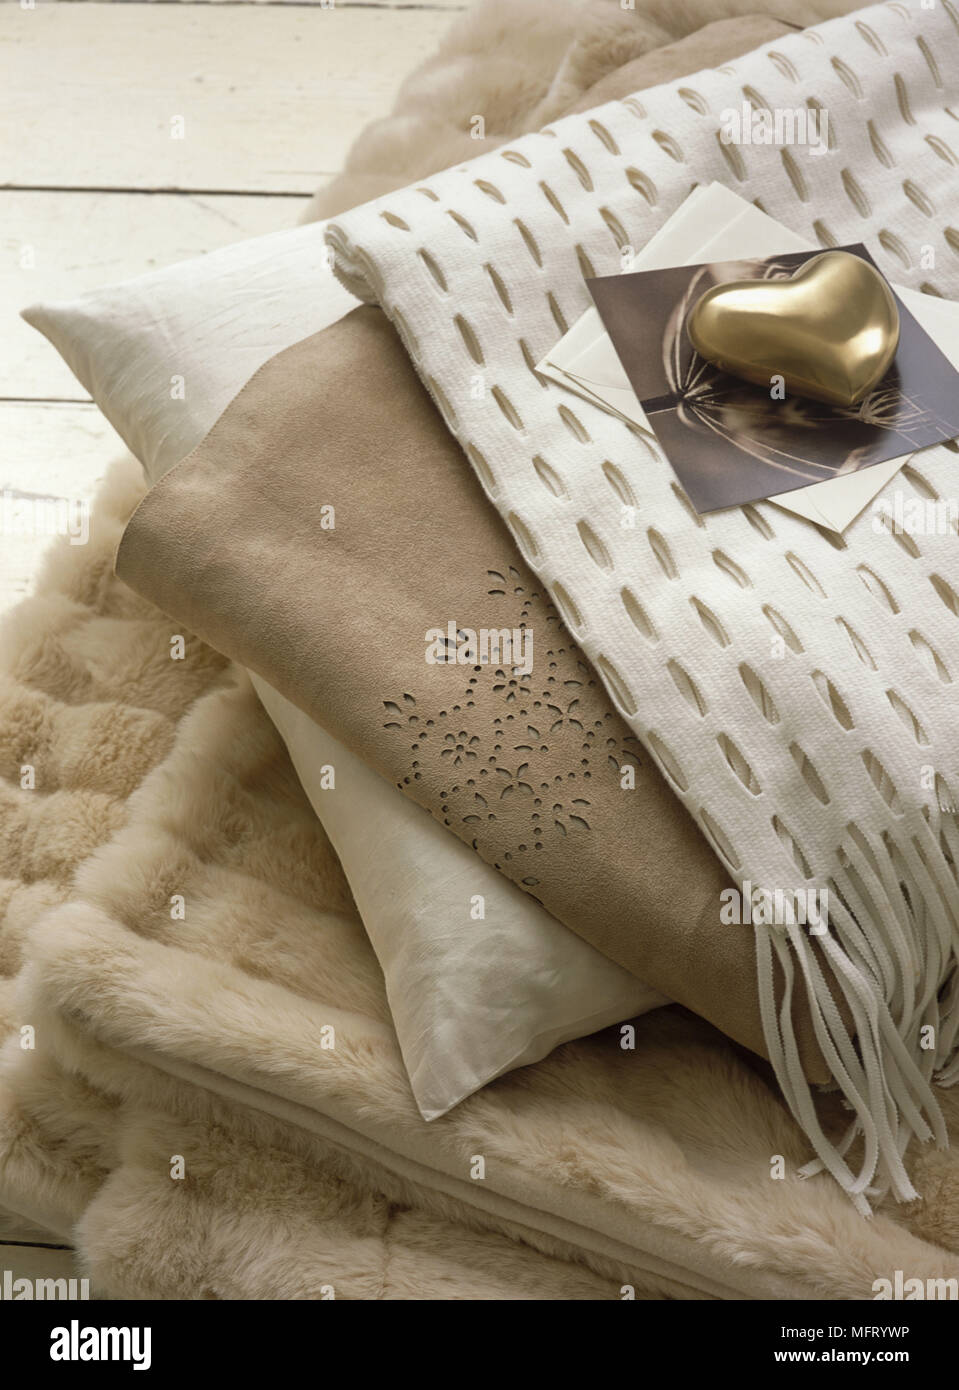 Fabrics and furry cushion covers in neutral colours - Stock Image